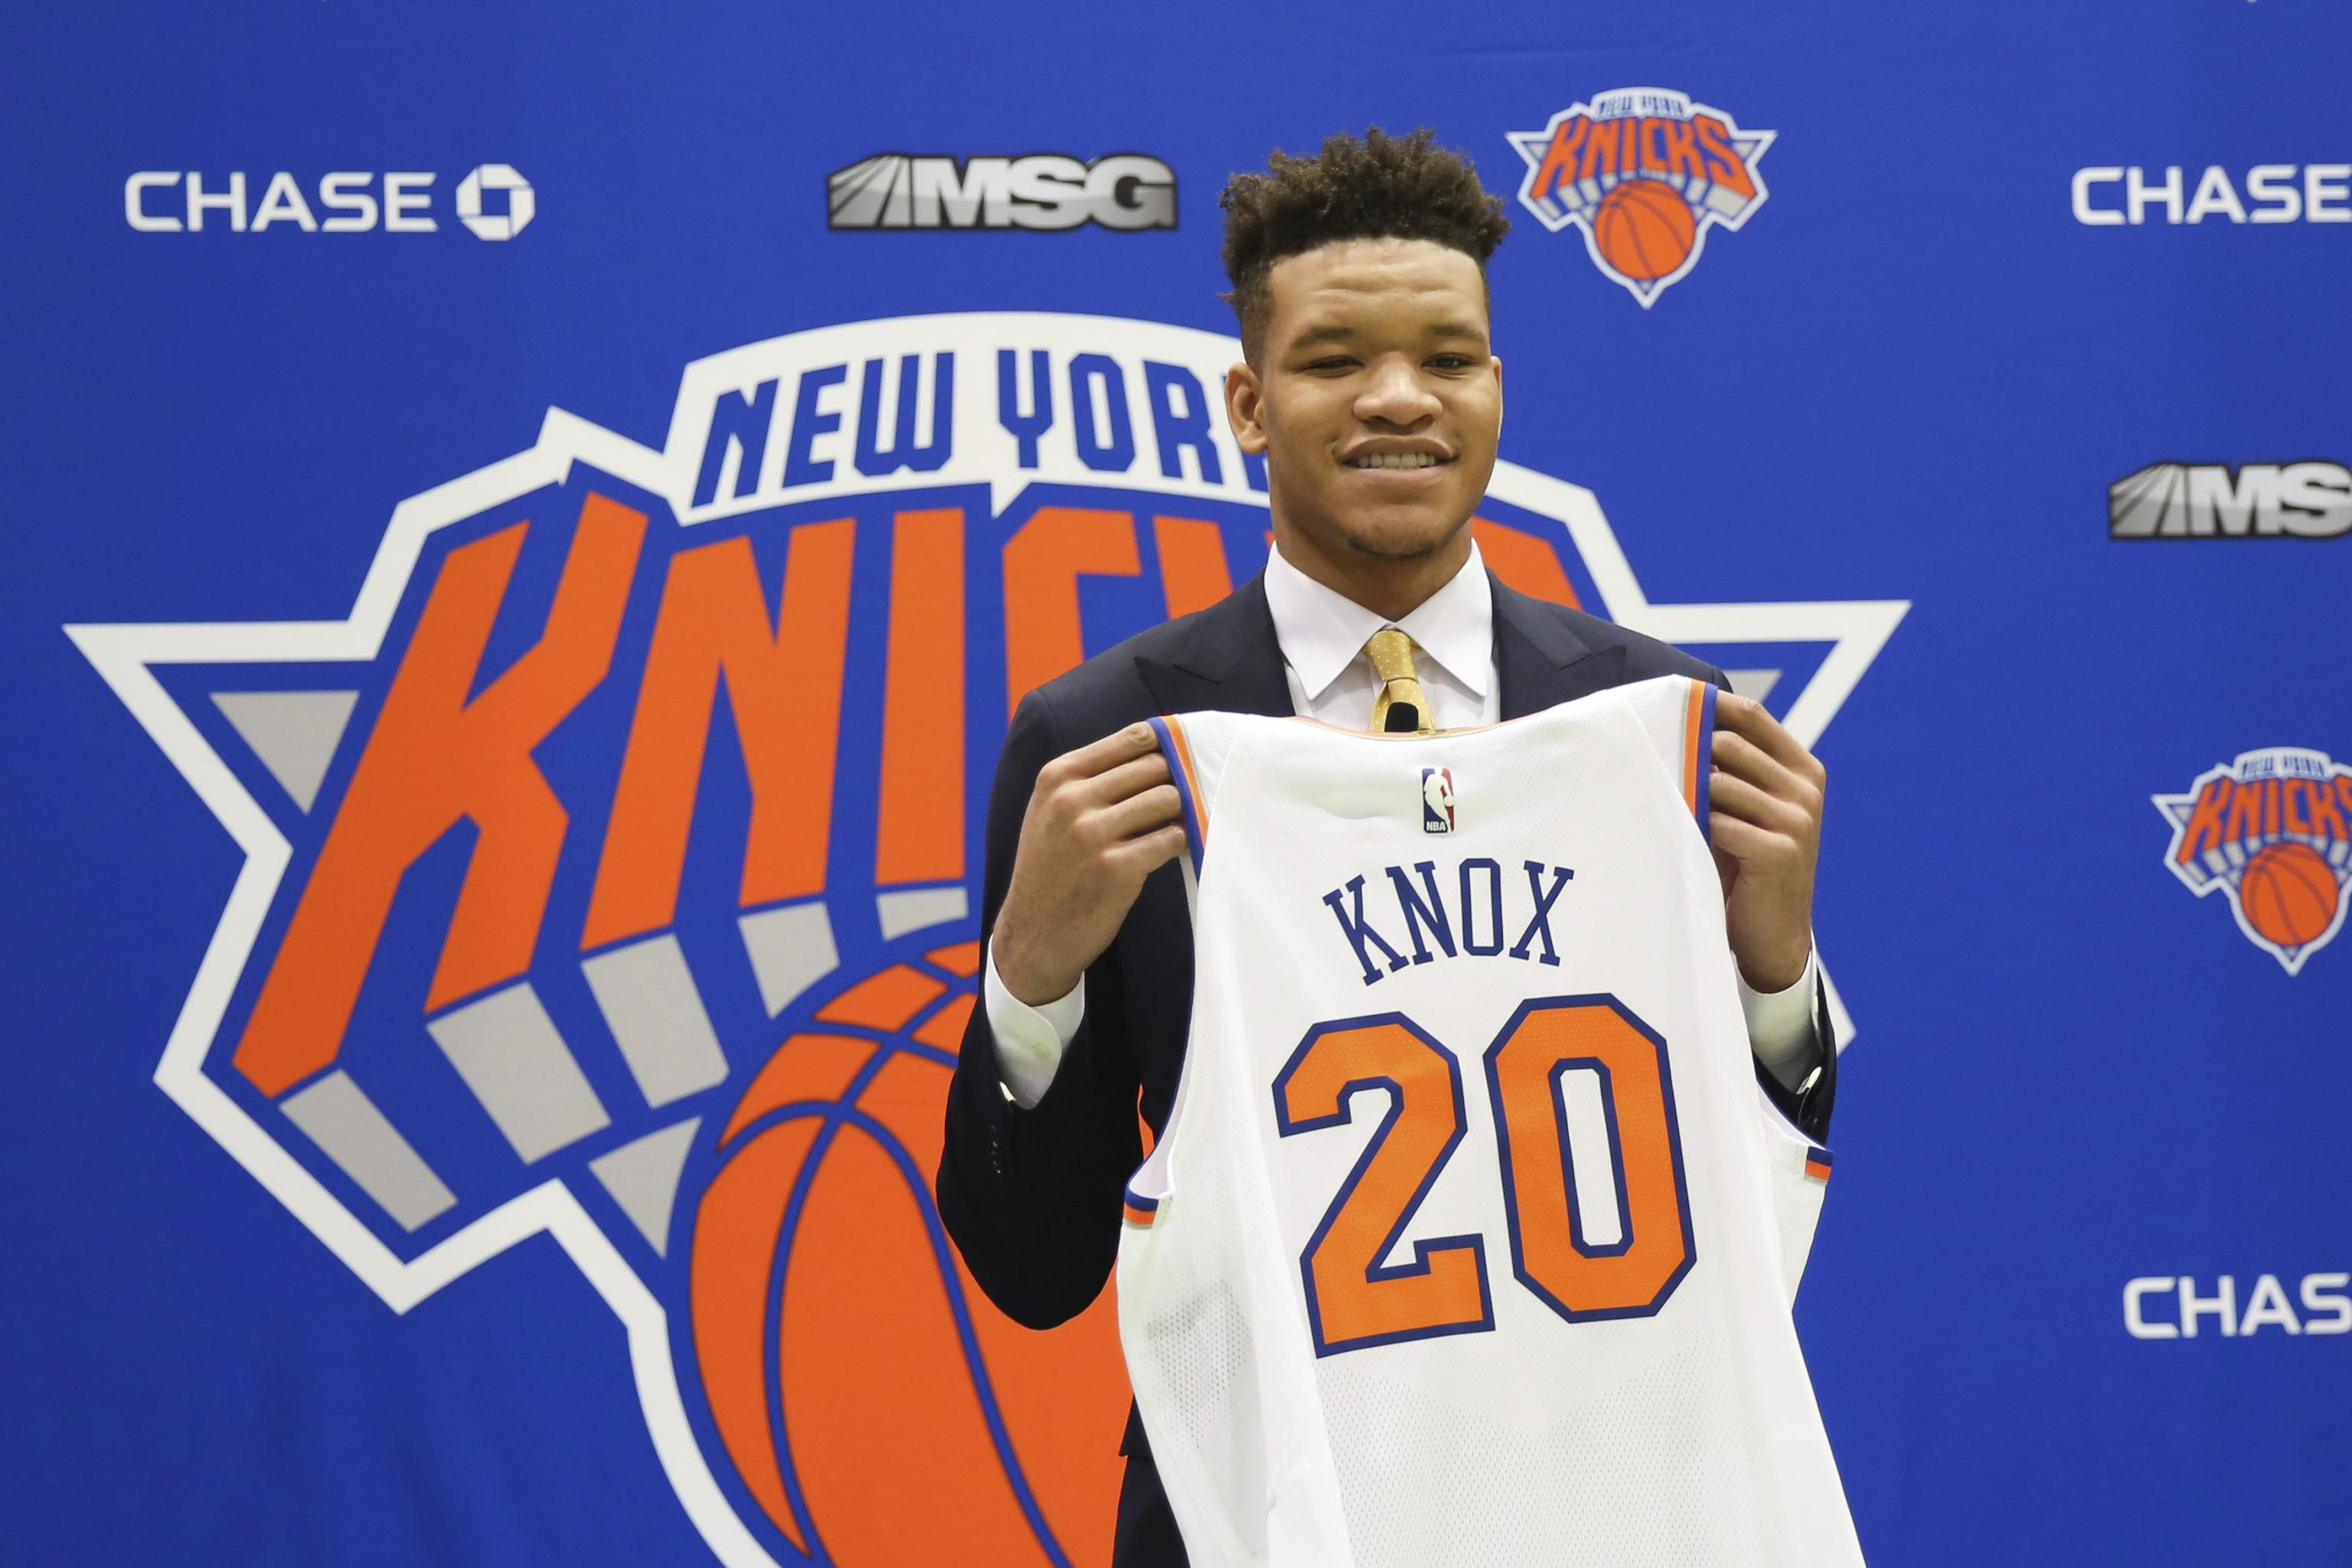 newest 02b61 a49b3 Knicks' Kevin Knox Says 'Rookie of the Year' Goal Will Be on ...